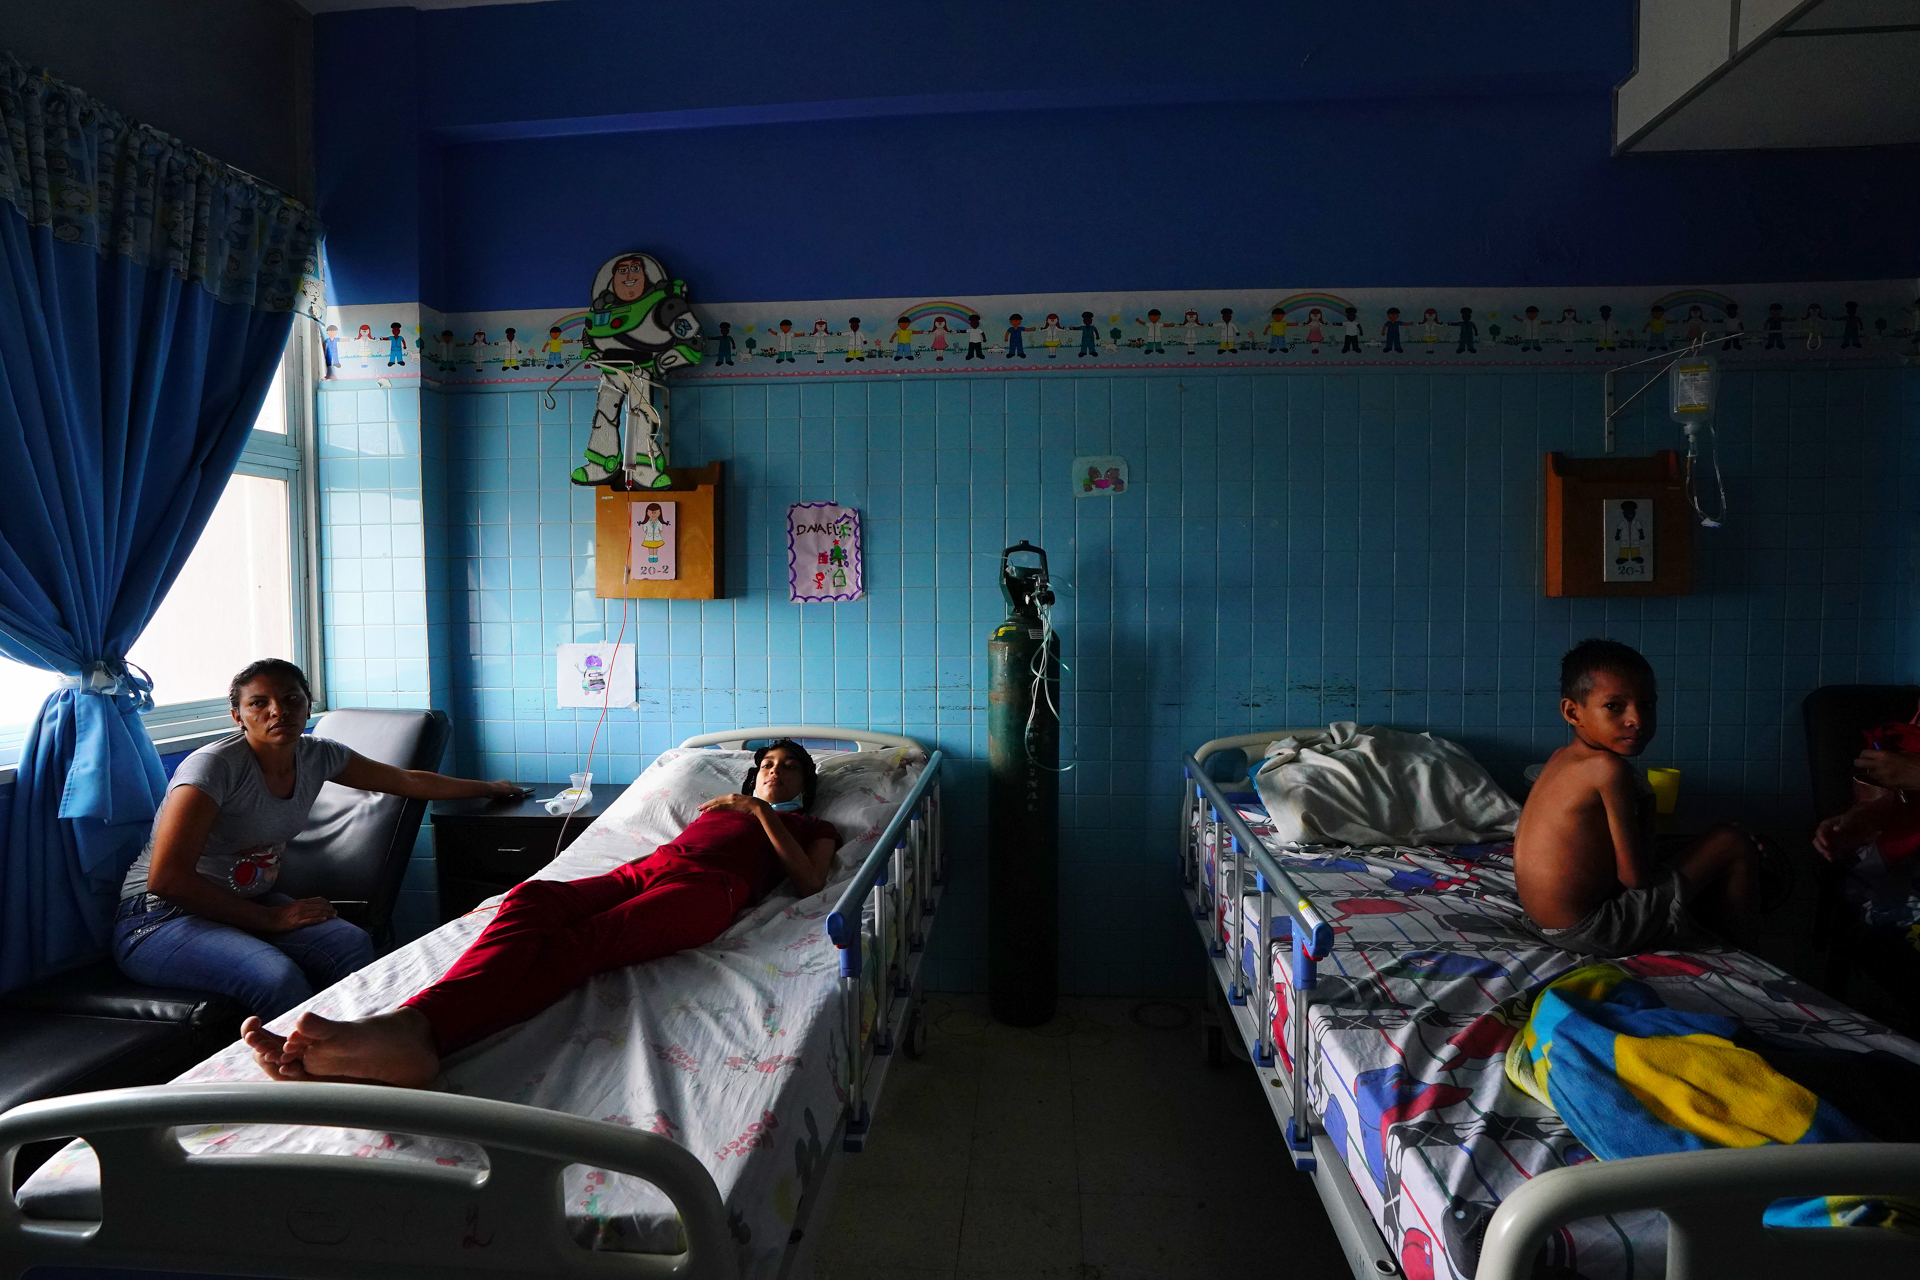 A blue room with hospital beds and decorations for children